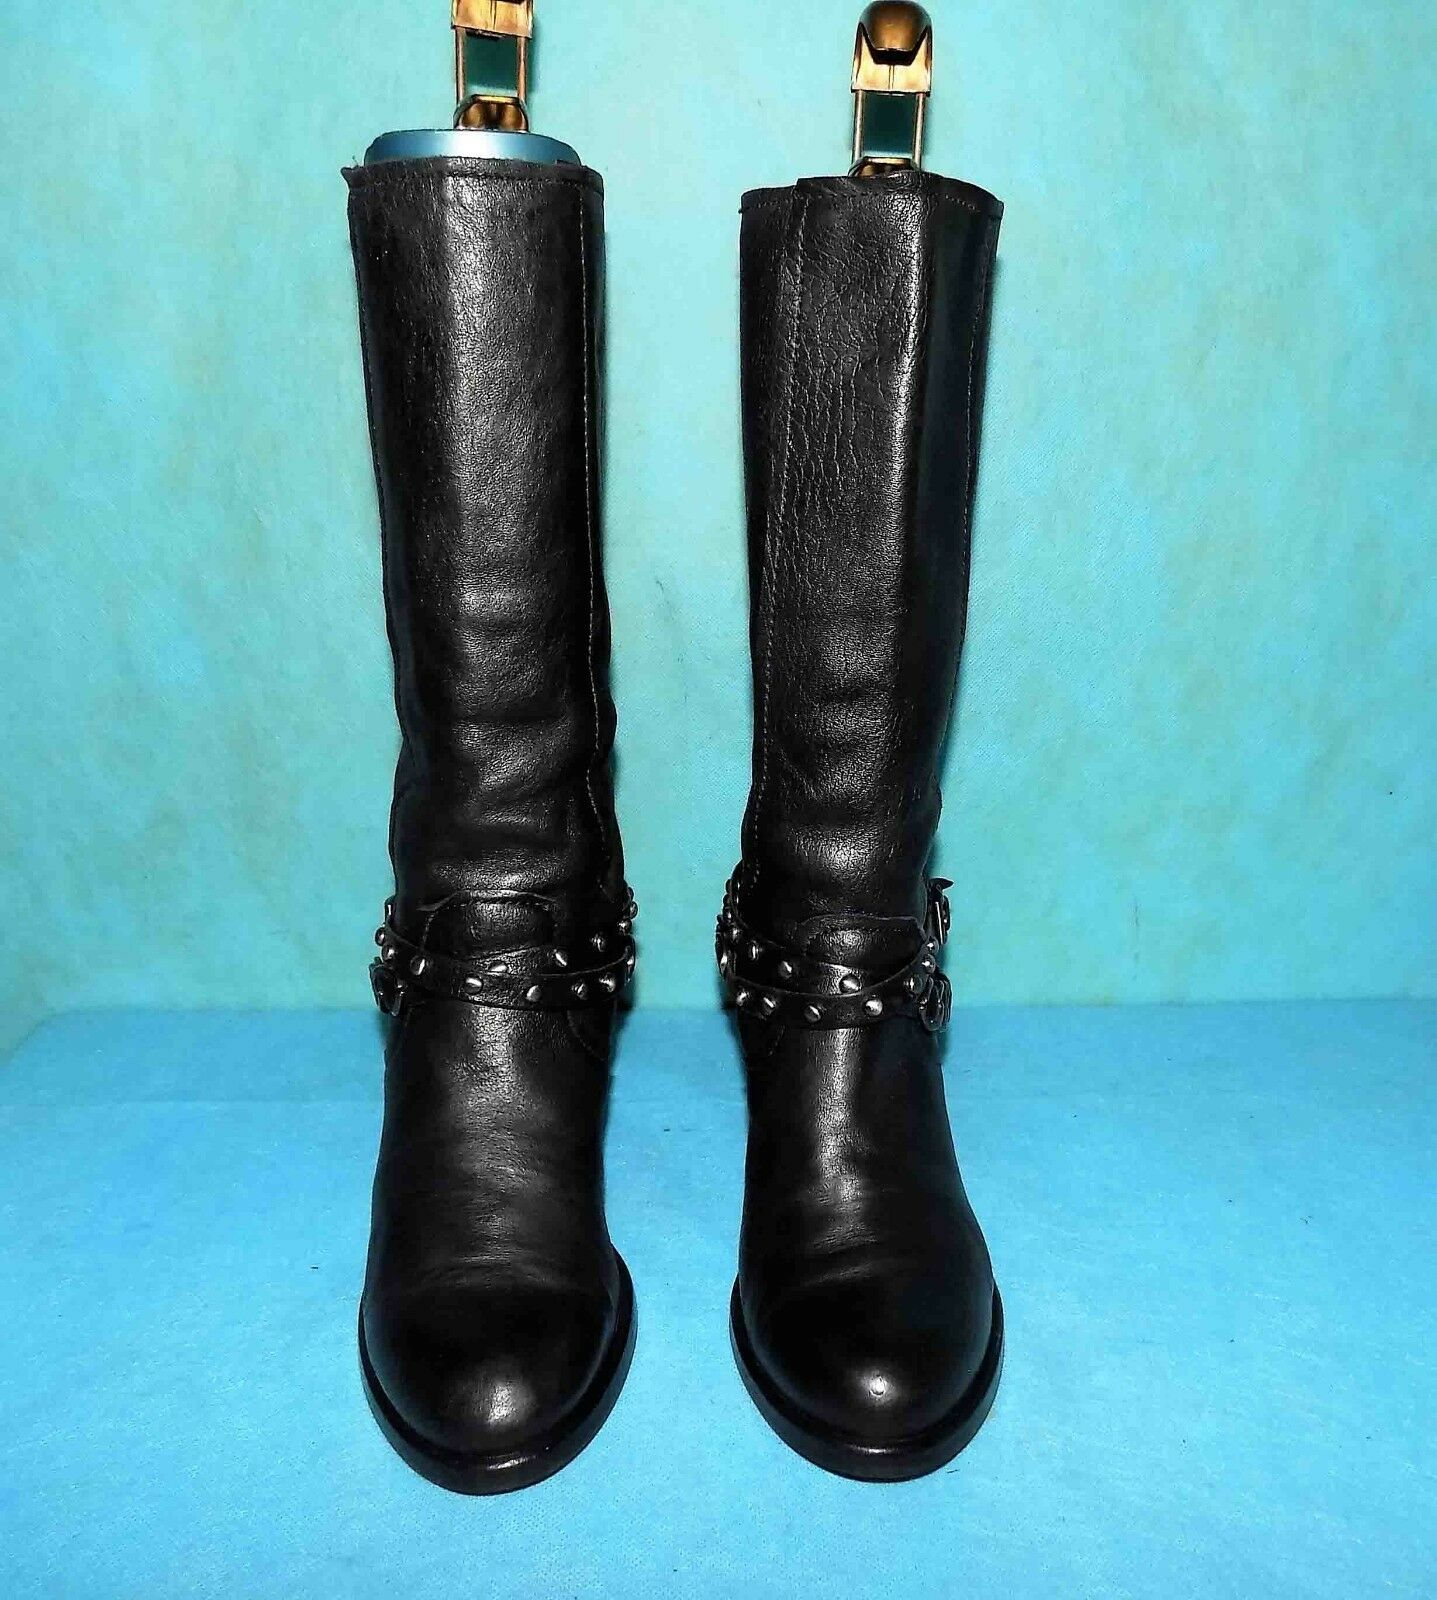 Boots Boots Boots CAFE black black leather p 37 fr very good condition 067e03